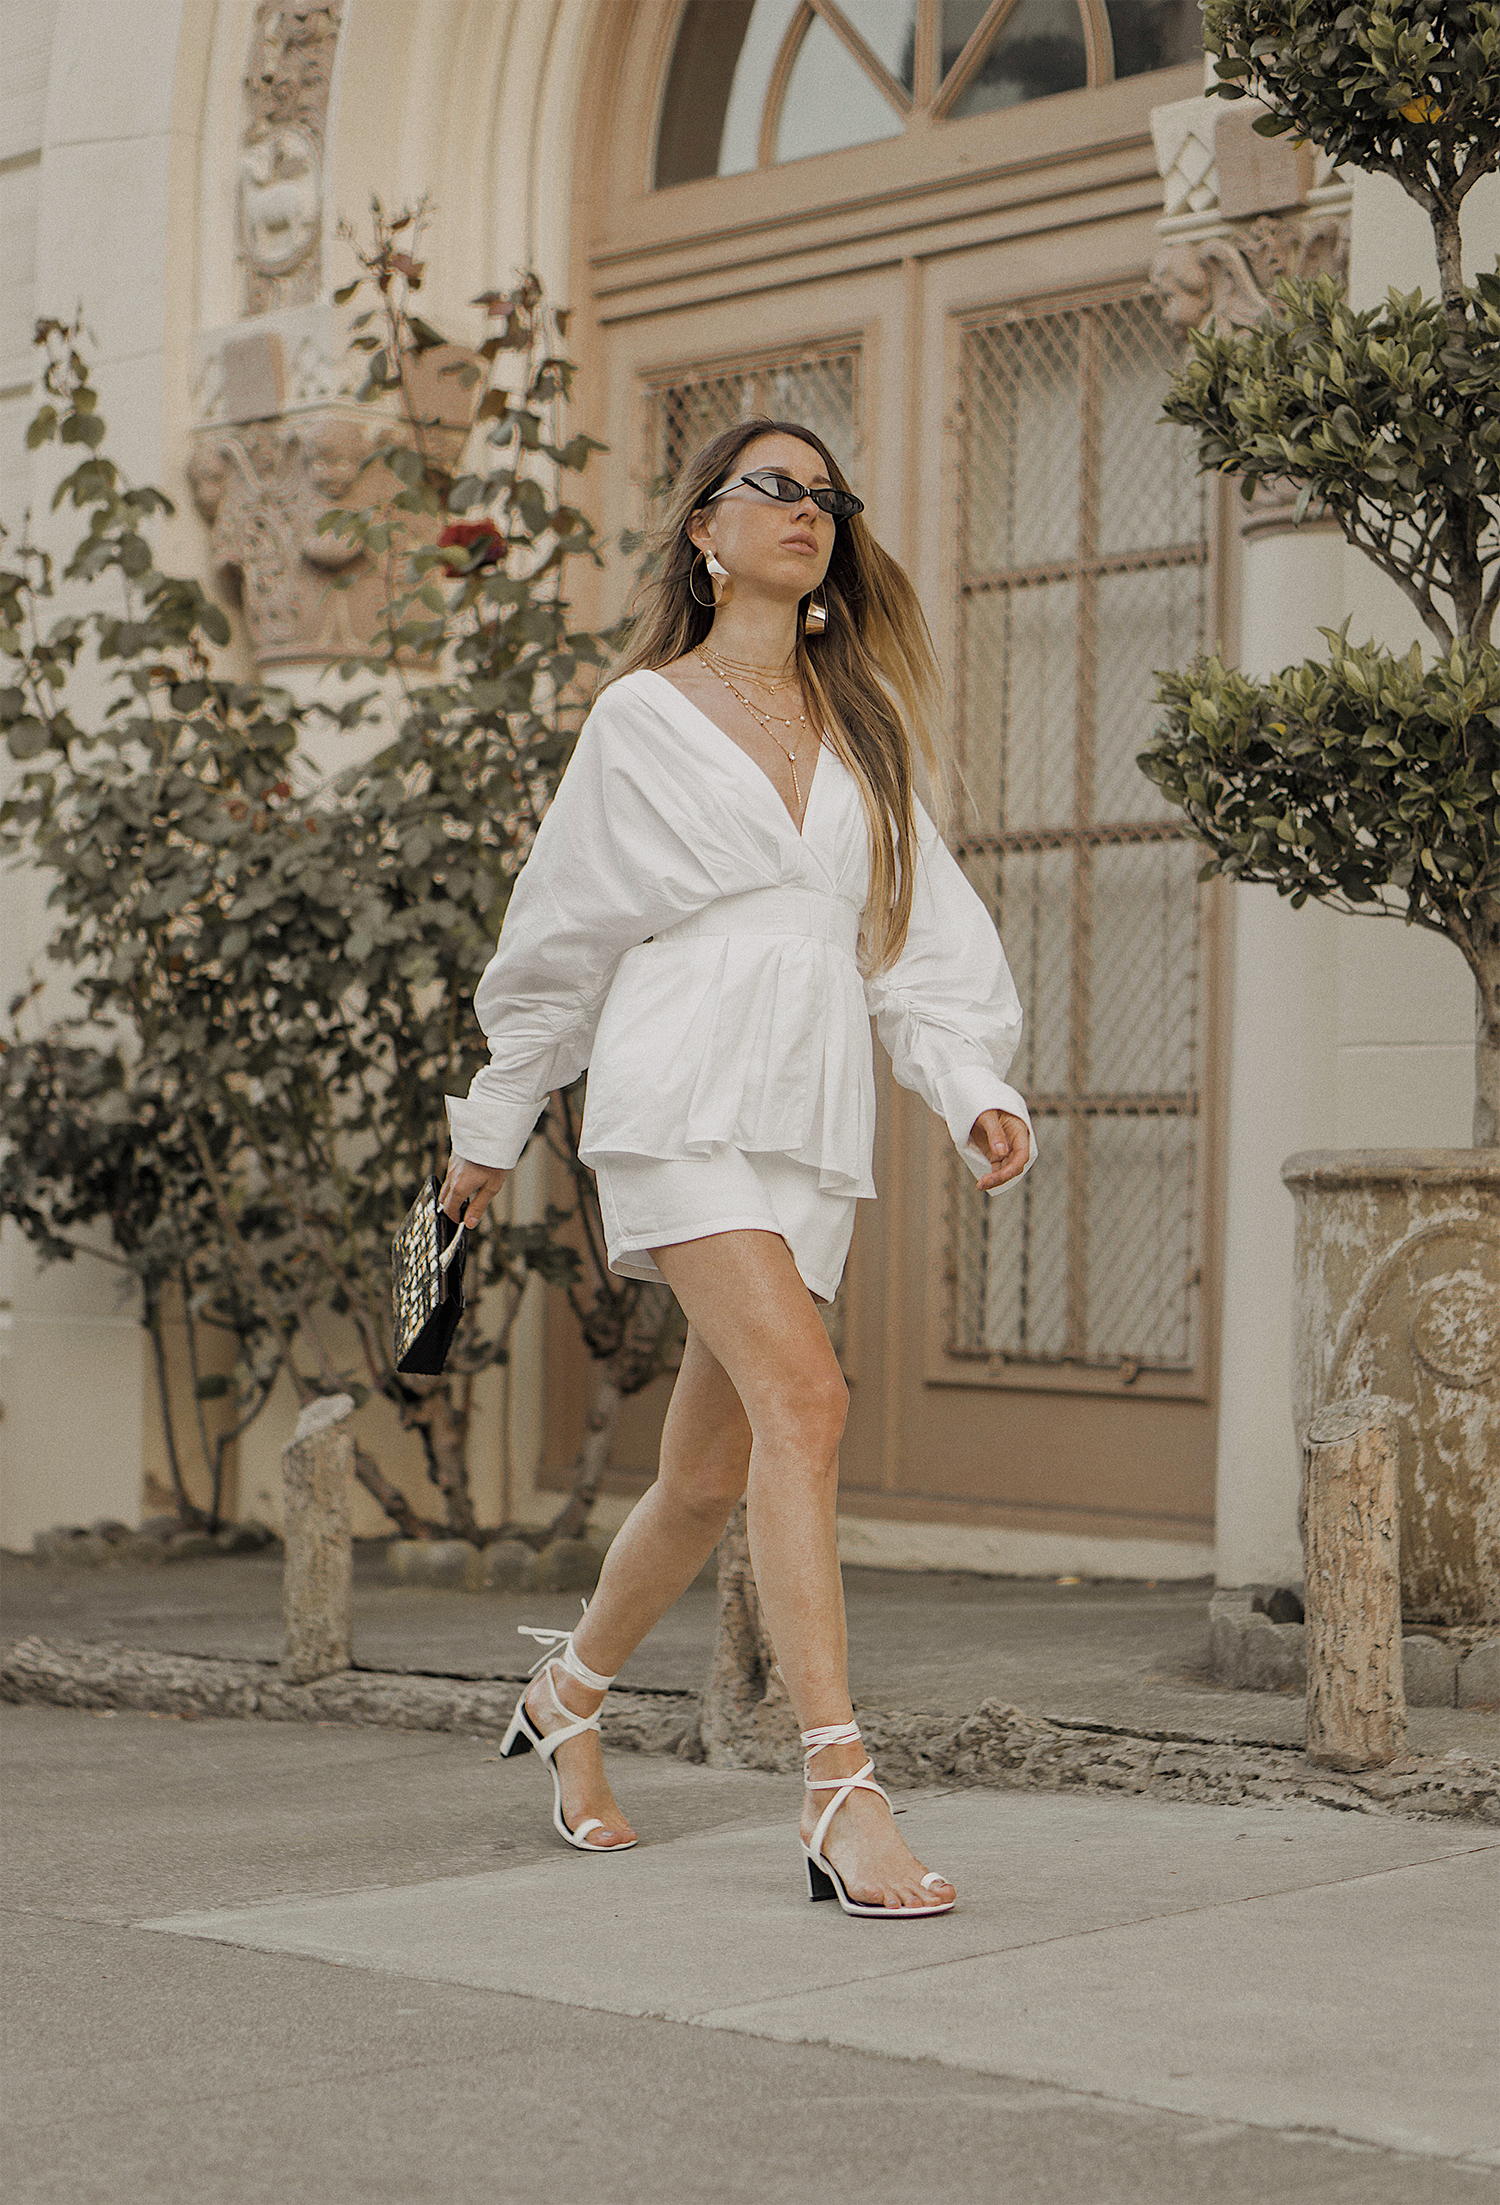 white_outfit_look_ideas_street_style_total_white_Céline_inspired_Ring_Toe_Lace_Up_Sandals_summer_san_francisco_fashion_blogger_bay_area_the_white_ocean_lena_juice_11